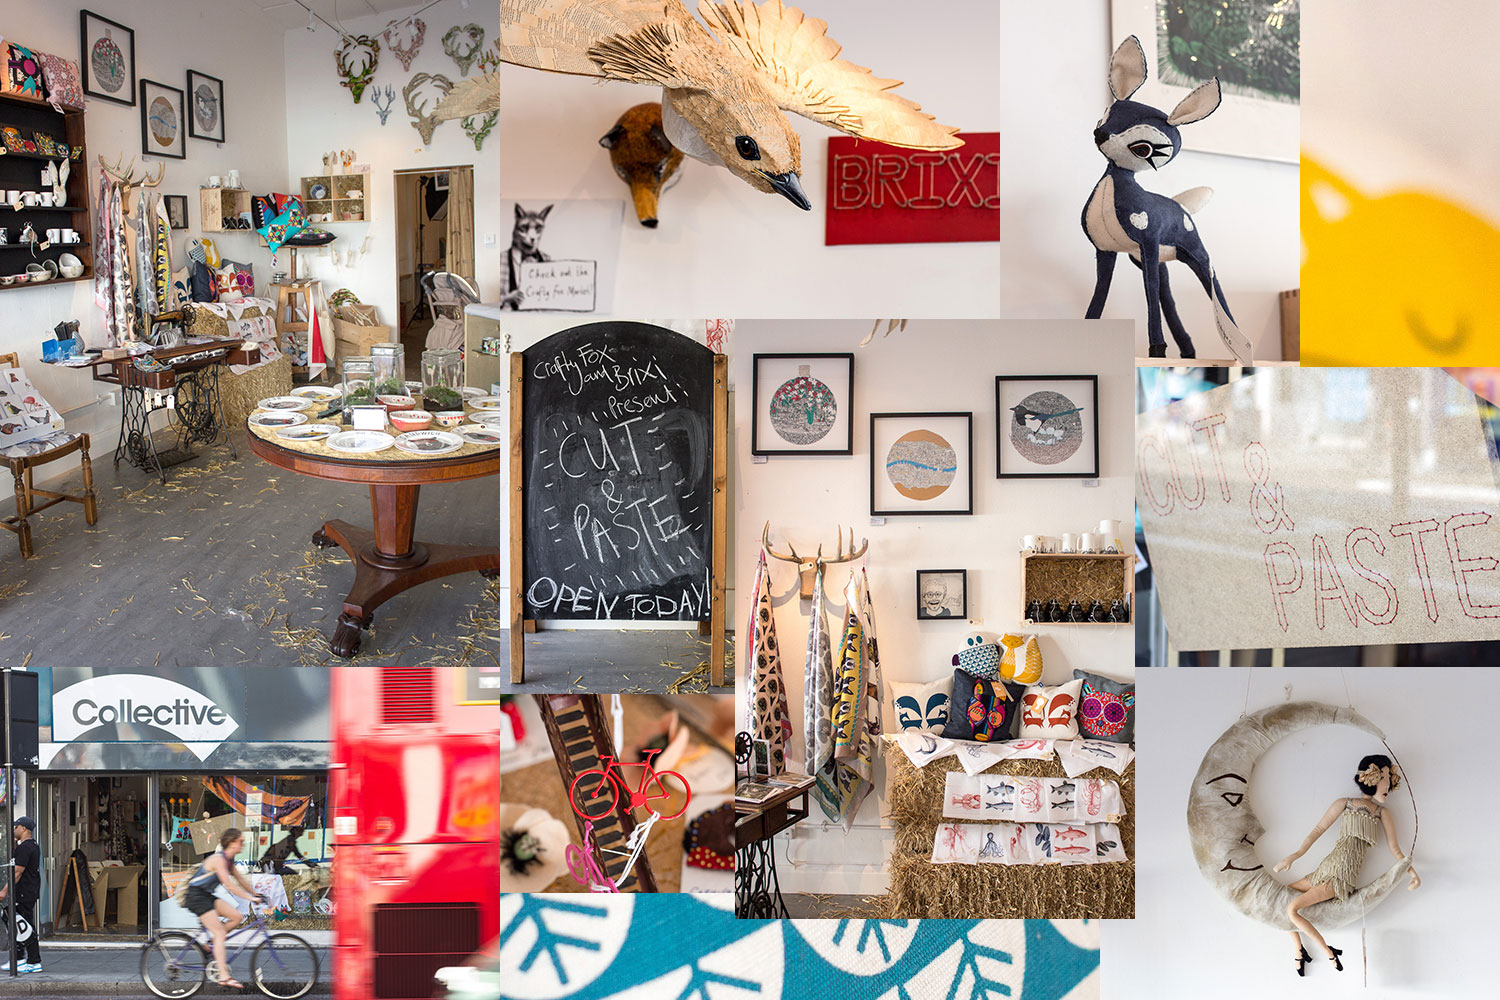 A popup shop filled with crafty delights from Crafty Fox and Brixi